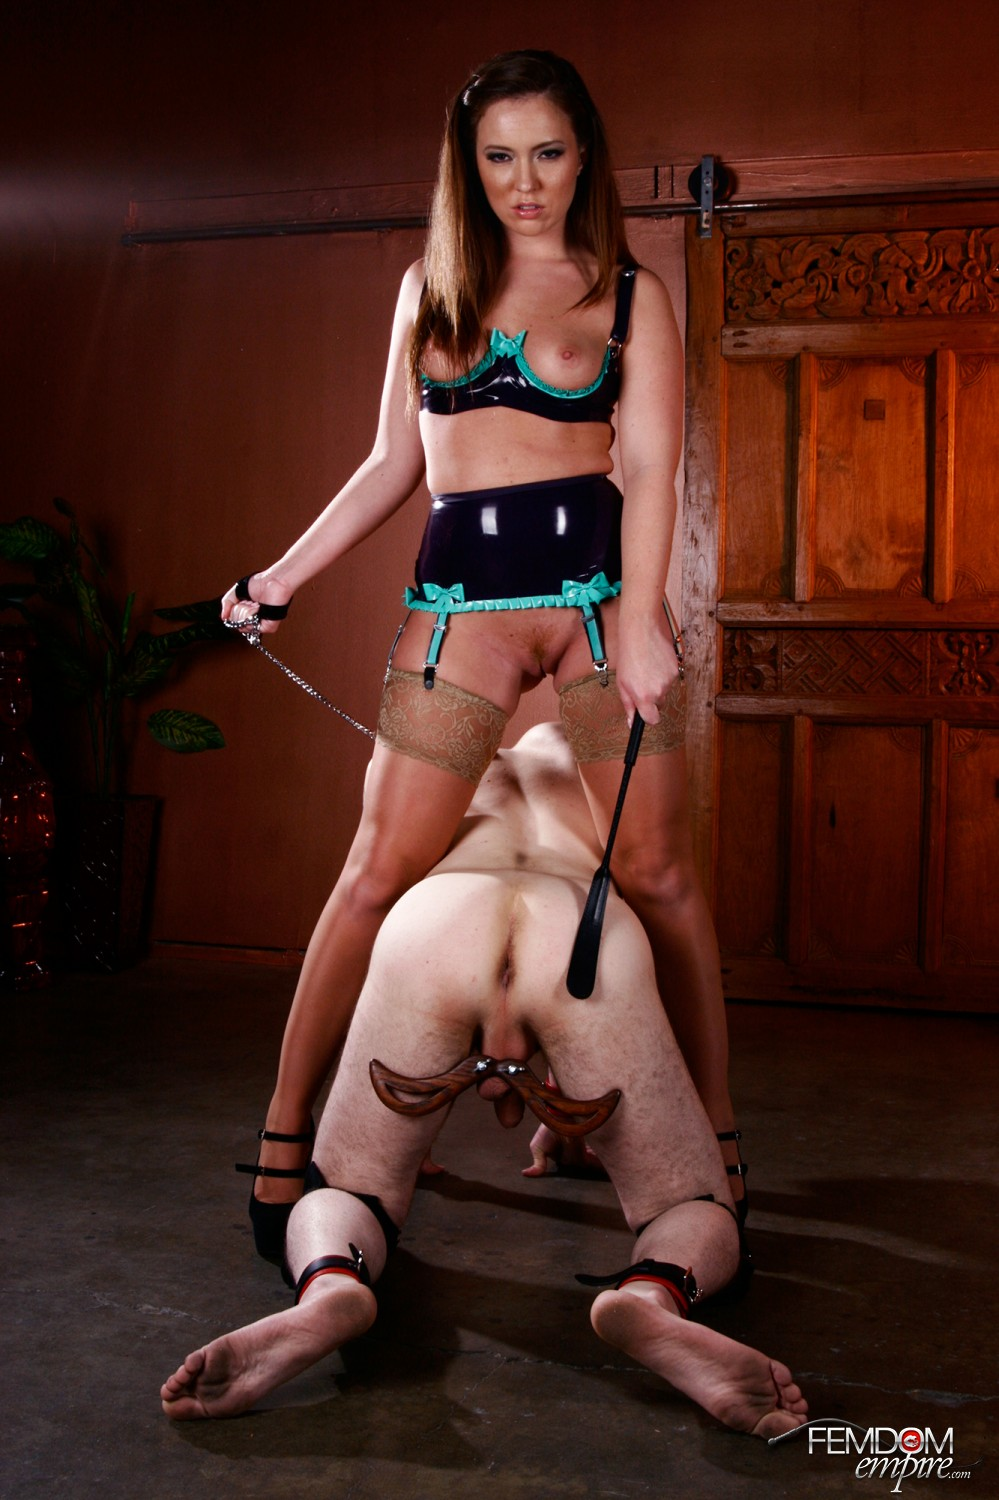 Mistress Maddy Oreilly Is Going To Take Out Her Bad Mood On Her Humbled